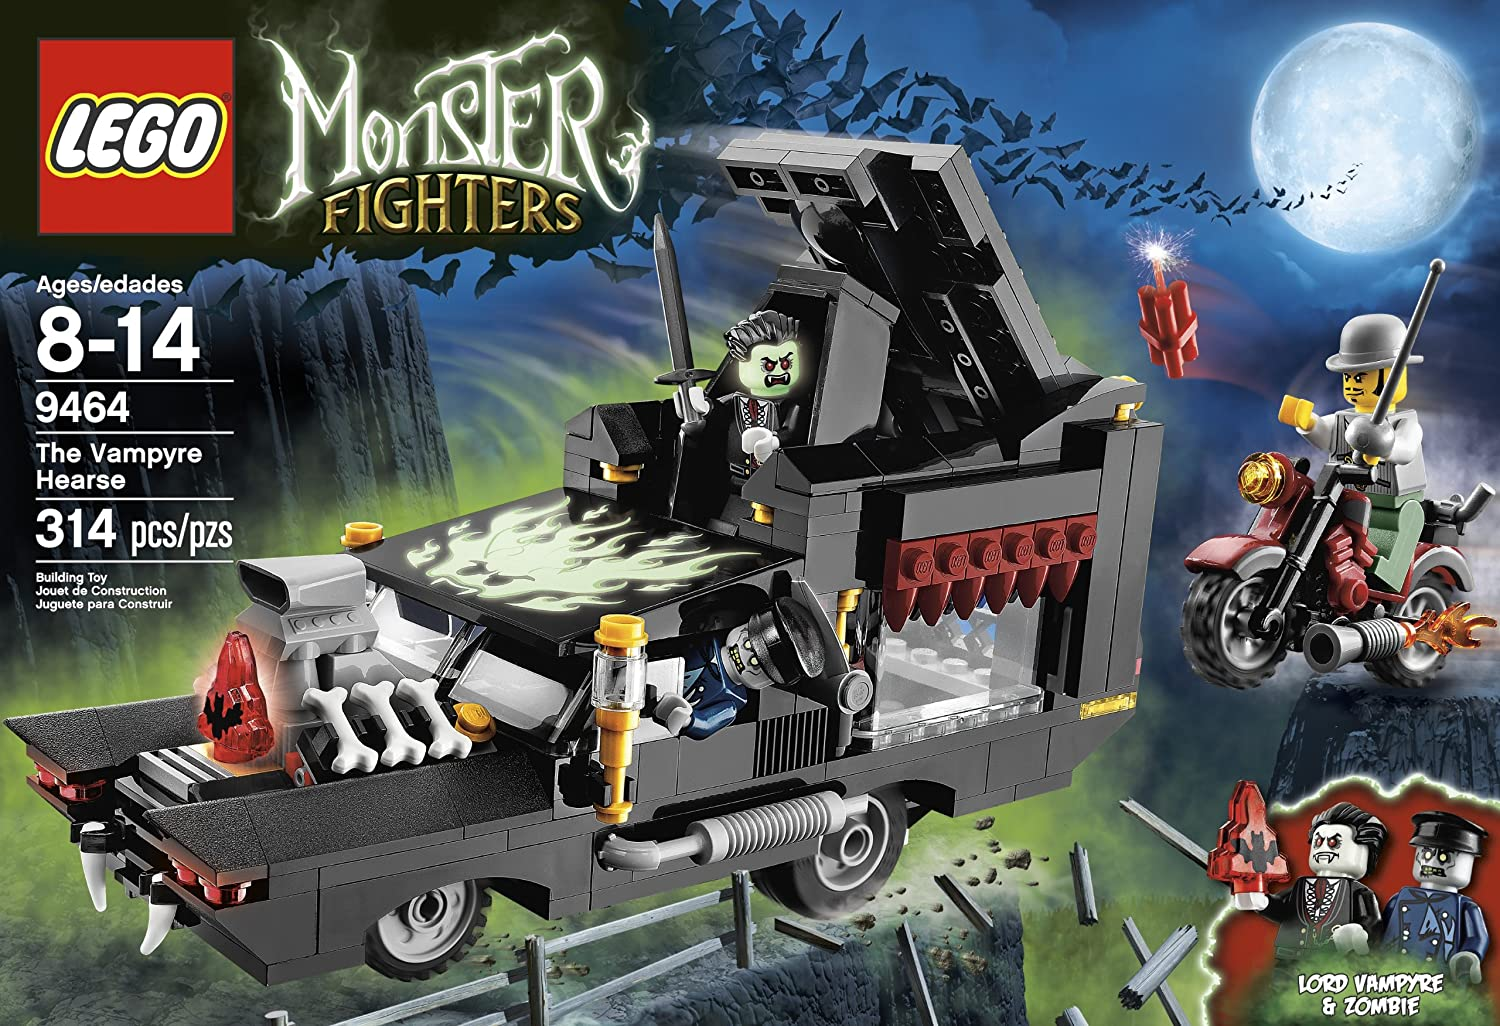 amazoncom lego monster fighters 9464 the vampyre hearse toys games - Lego Monstre